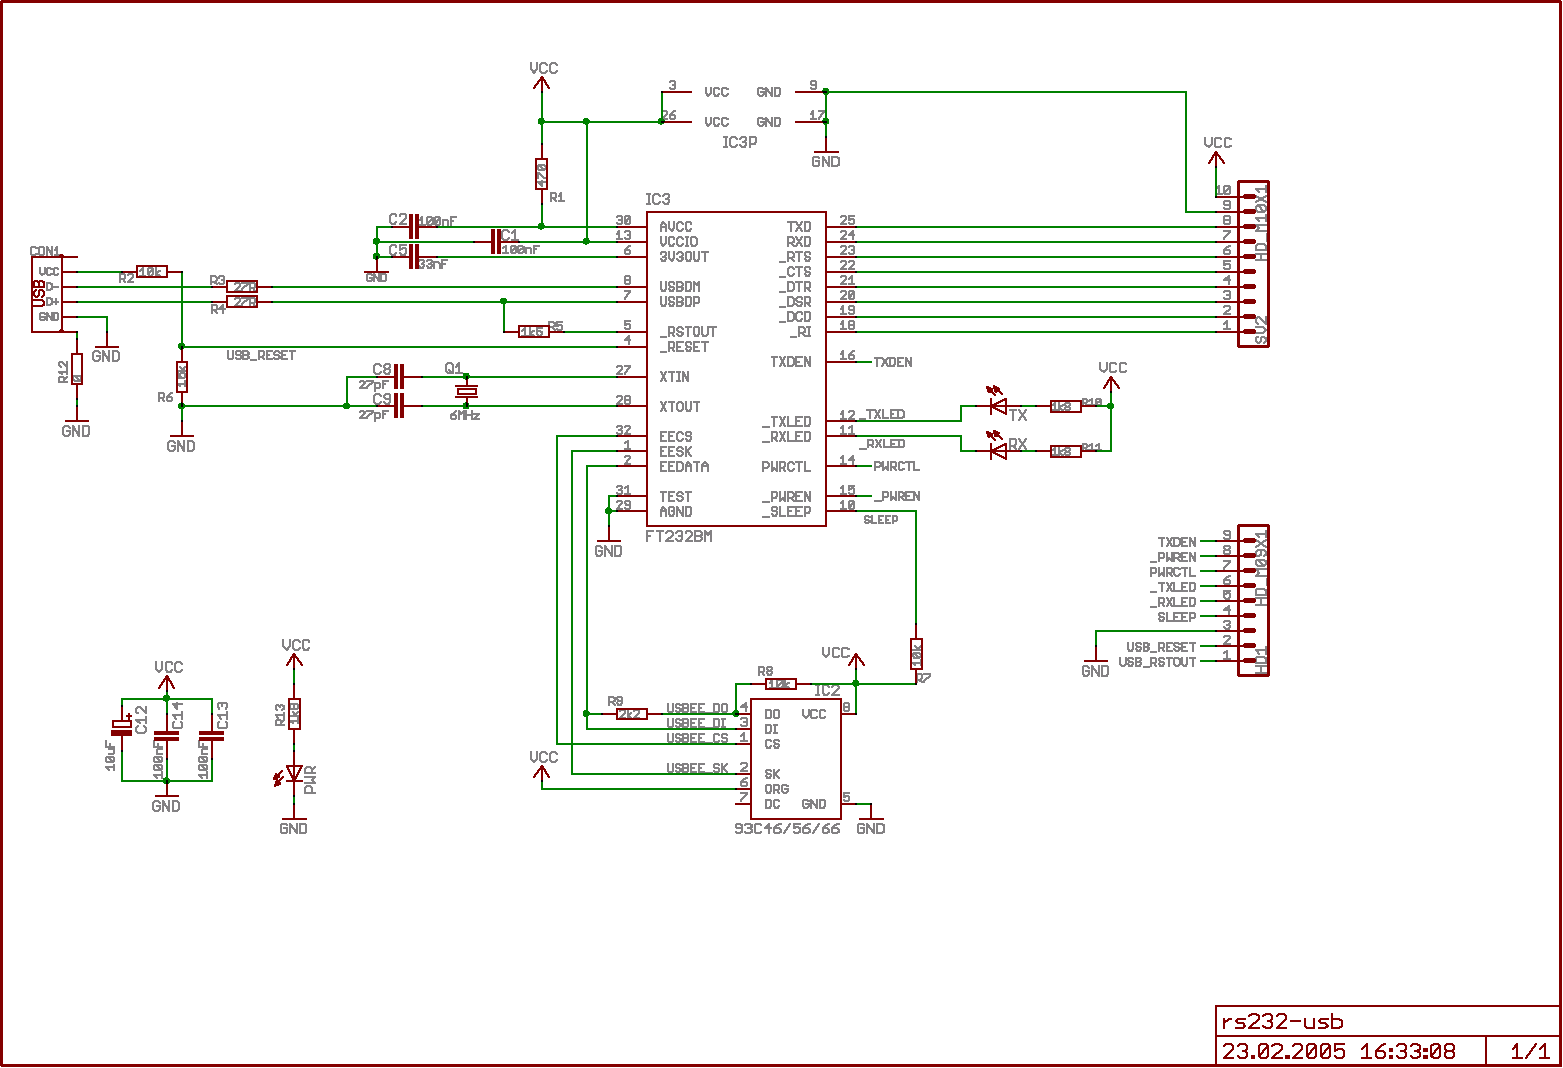 Usb To Rs232 Converter Circuit Diagram - Wiring Diagram • Usb Rs Cable Wiring Diagram on rs232 circuit diagram, telephone jack wiring color code diagram, rs232 cable pinout, rs485 to rs232 wiring diagram, rs232 connector diagram, rs232 connection diagram, rs232 serial adapter to usb converter diagram, rs232 wire, 9-pin connector wiring diagram, rs232 to rj45 wiring-diagram, case wiring diagram, software wiring diagram, rs232 schematic, null modem cable diagram, rs232 serial cable, data cable diagram, rs232 cable specifications, 4 wire phone jack wiring diagram, rs232 cable connector, rs232 pinout diagram,